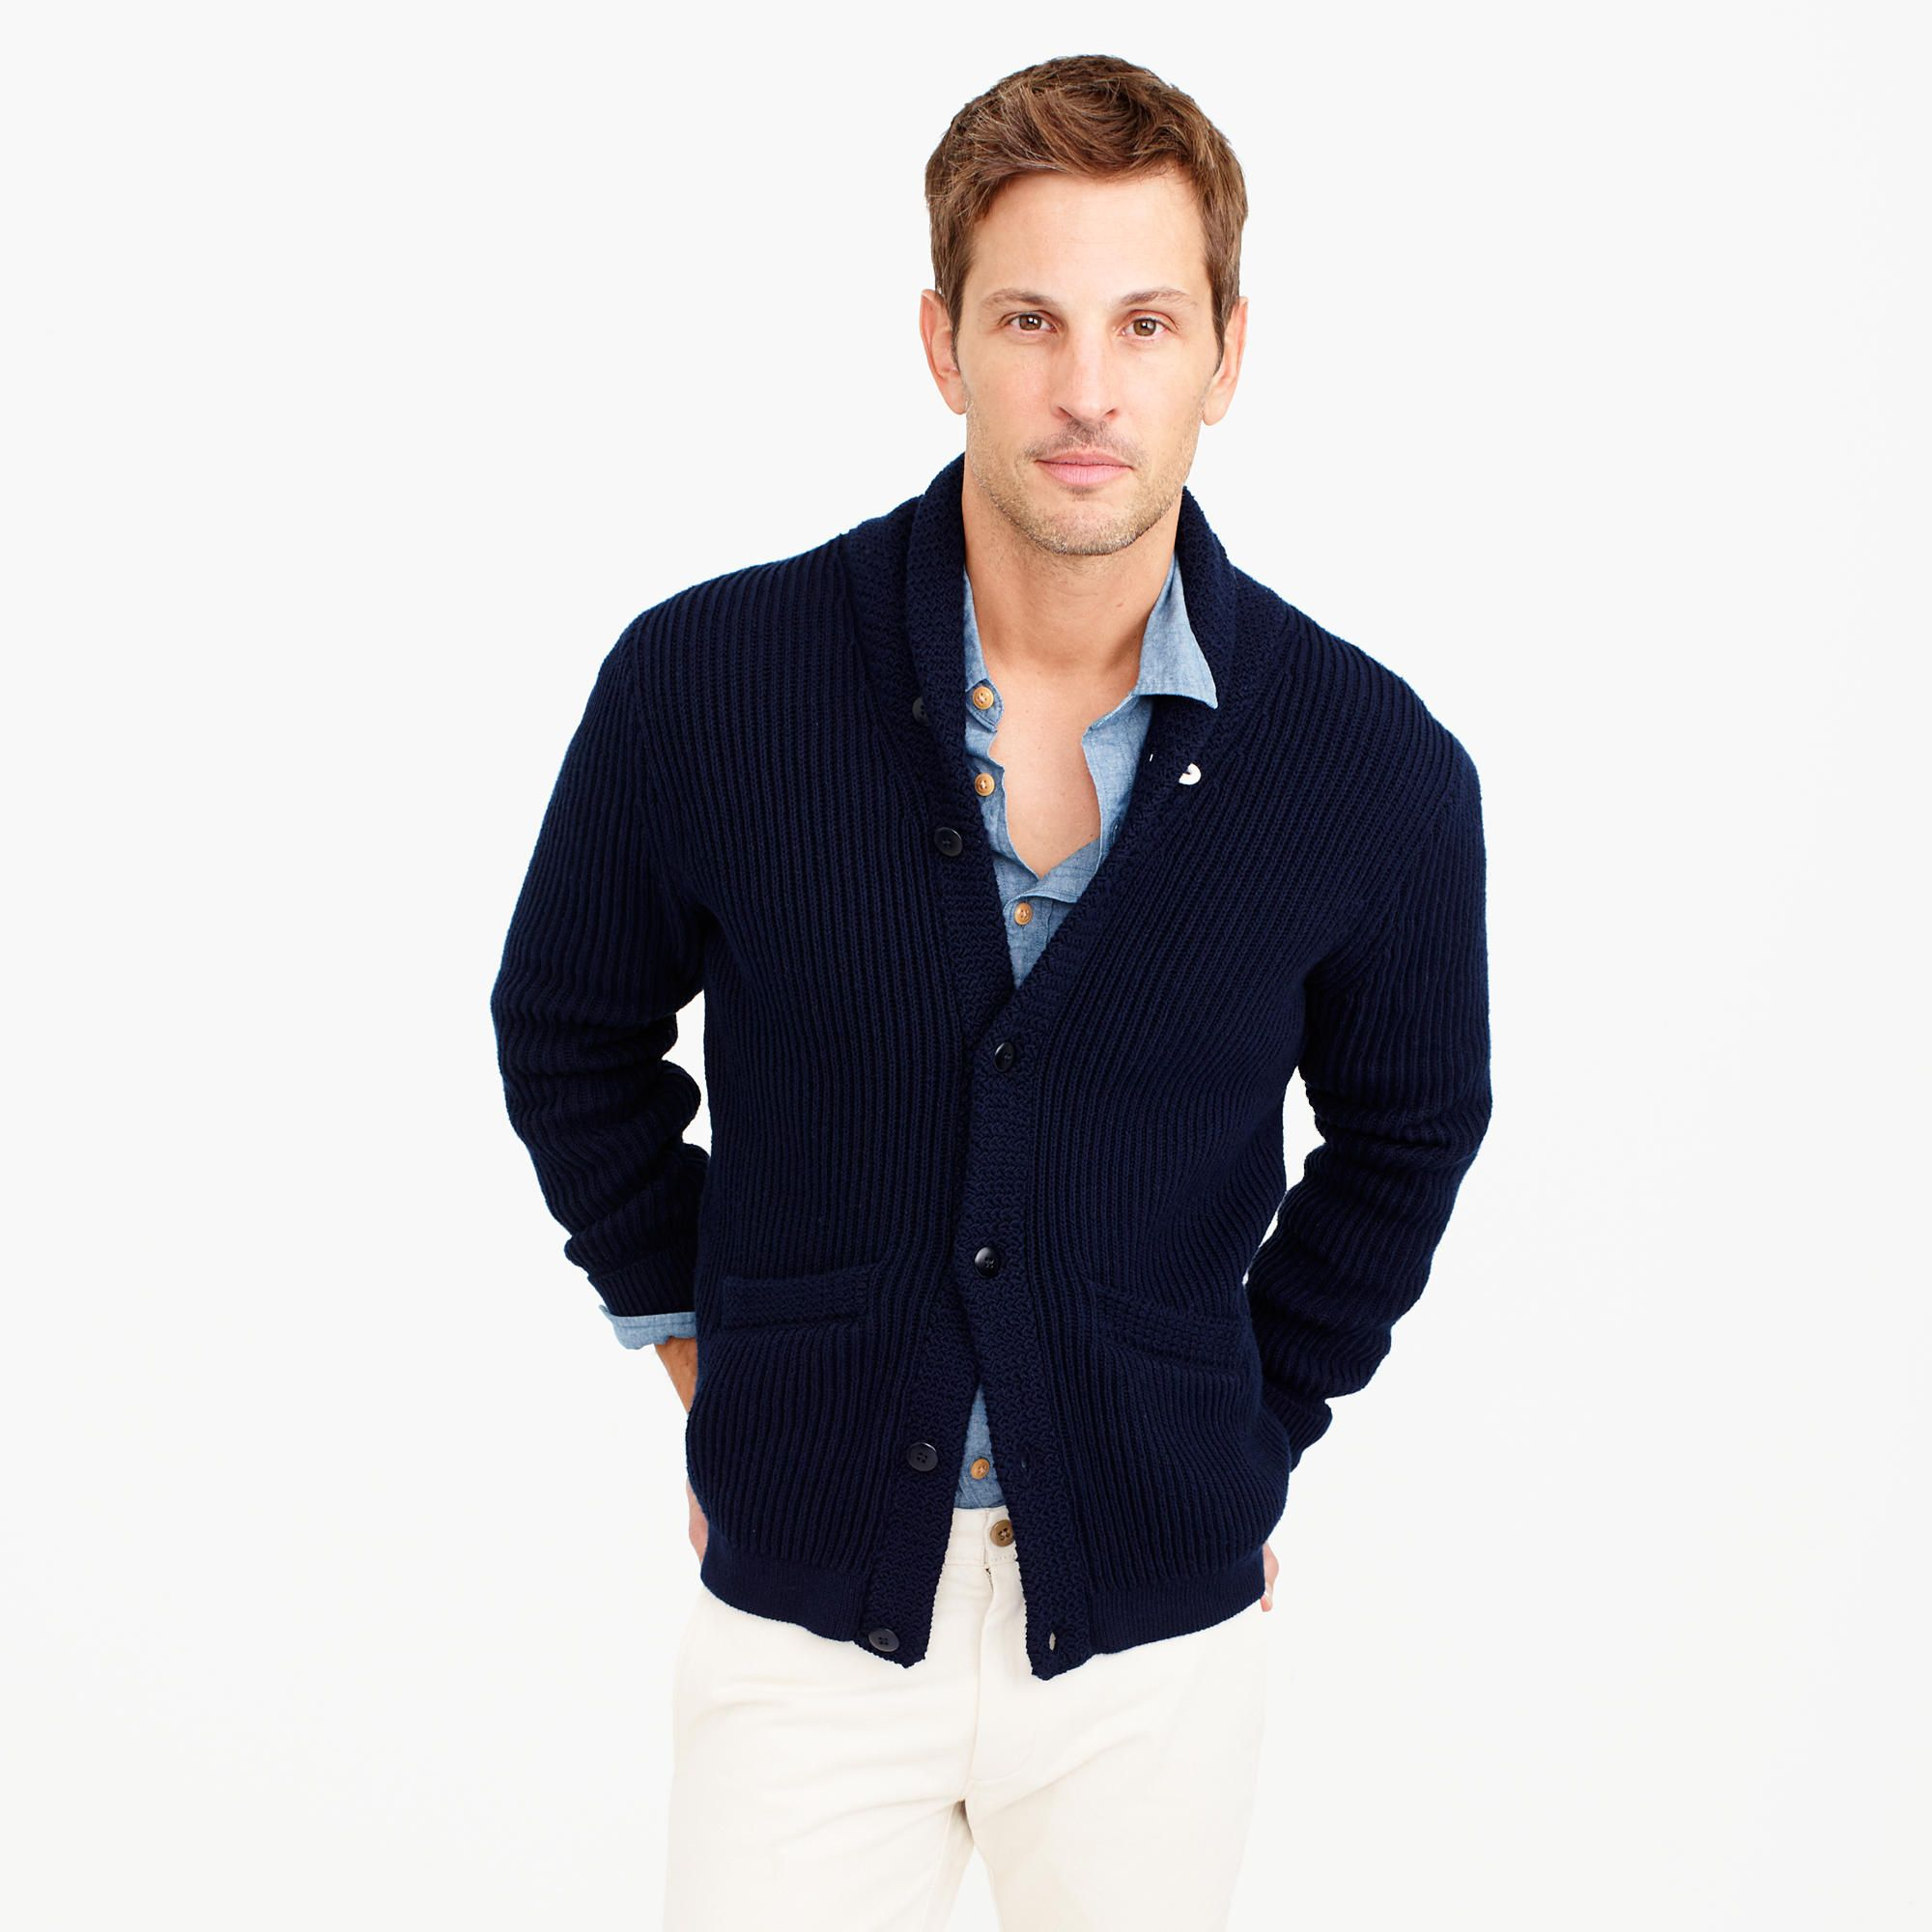 J. Crew cotton shawl-collar cardigan sweater in navy ($118) | wear ...